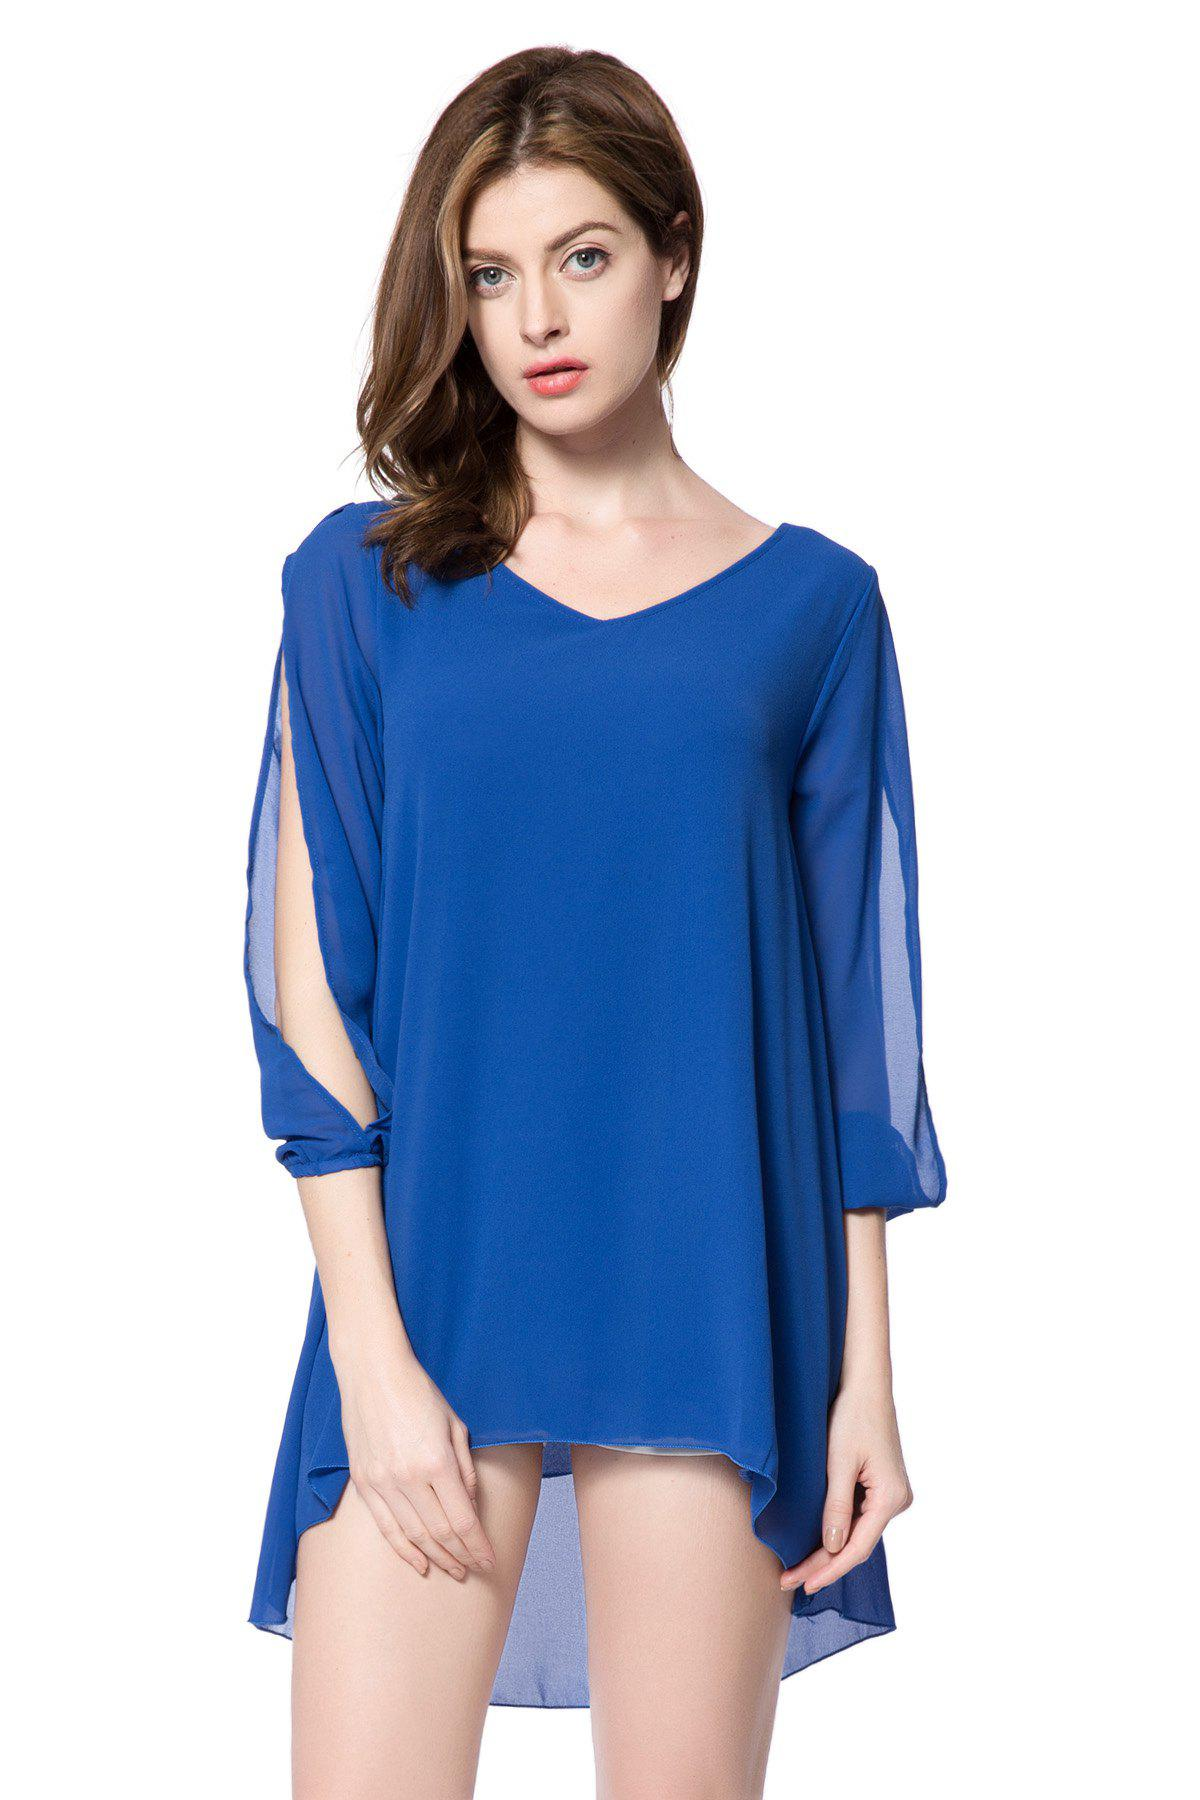 Stylish V-Neck Hollow Out 3/4 Sleeve Chiffon Dress For Women - SAPPHIRE BLUE XL